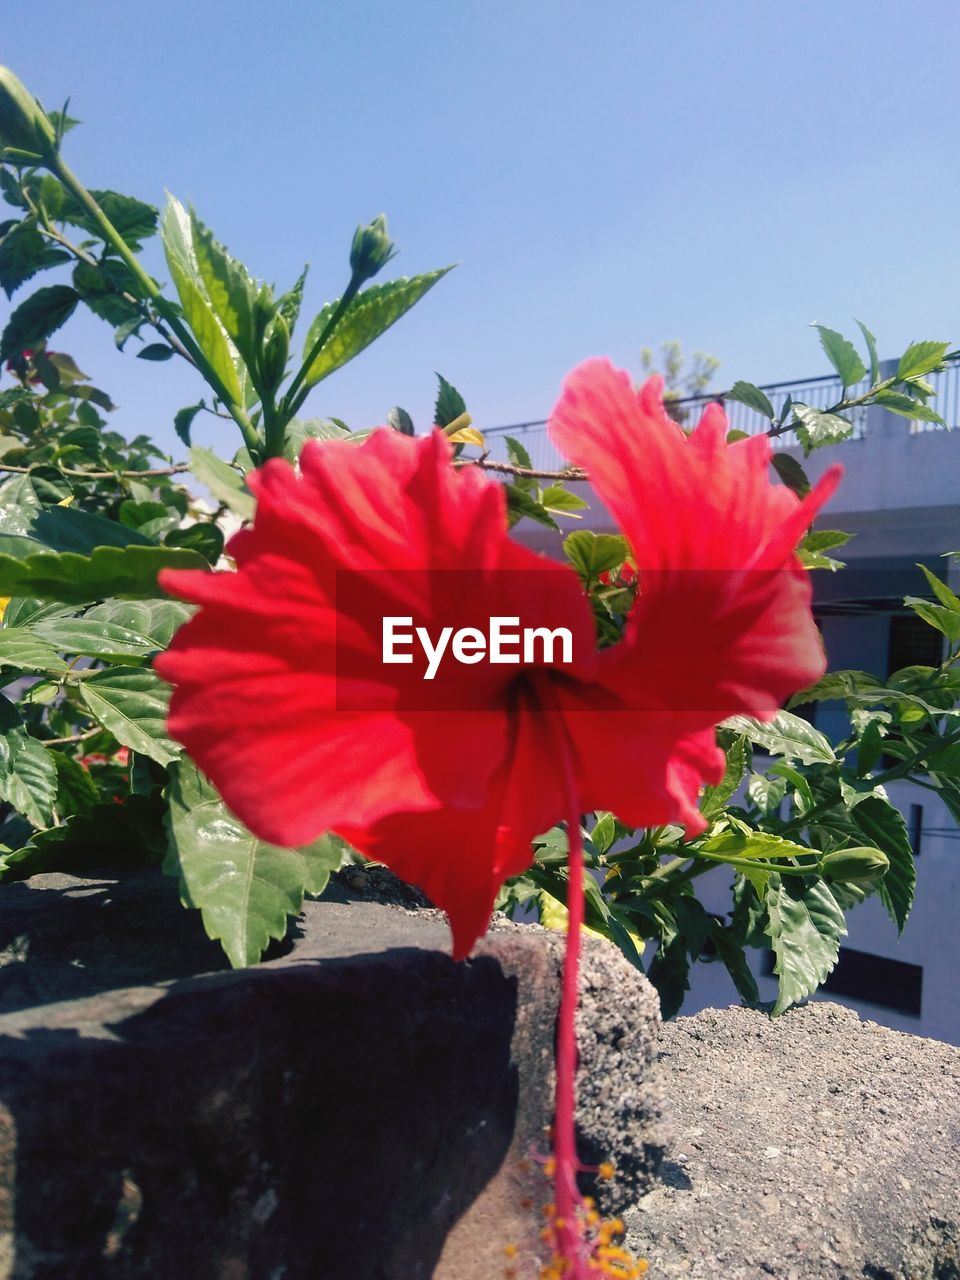 flower, red, beauty in nature, plant, nature, petal, growth, fragility, no people, freshness, day, hibiscus, outdoors, flower head, blooming, close-up